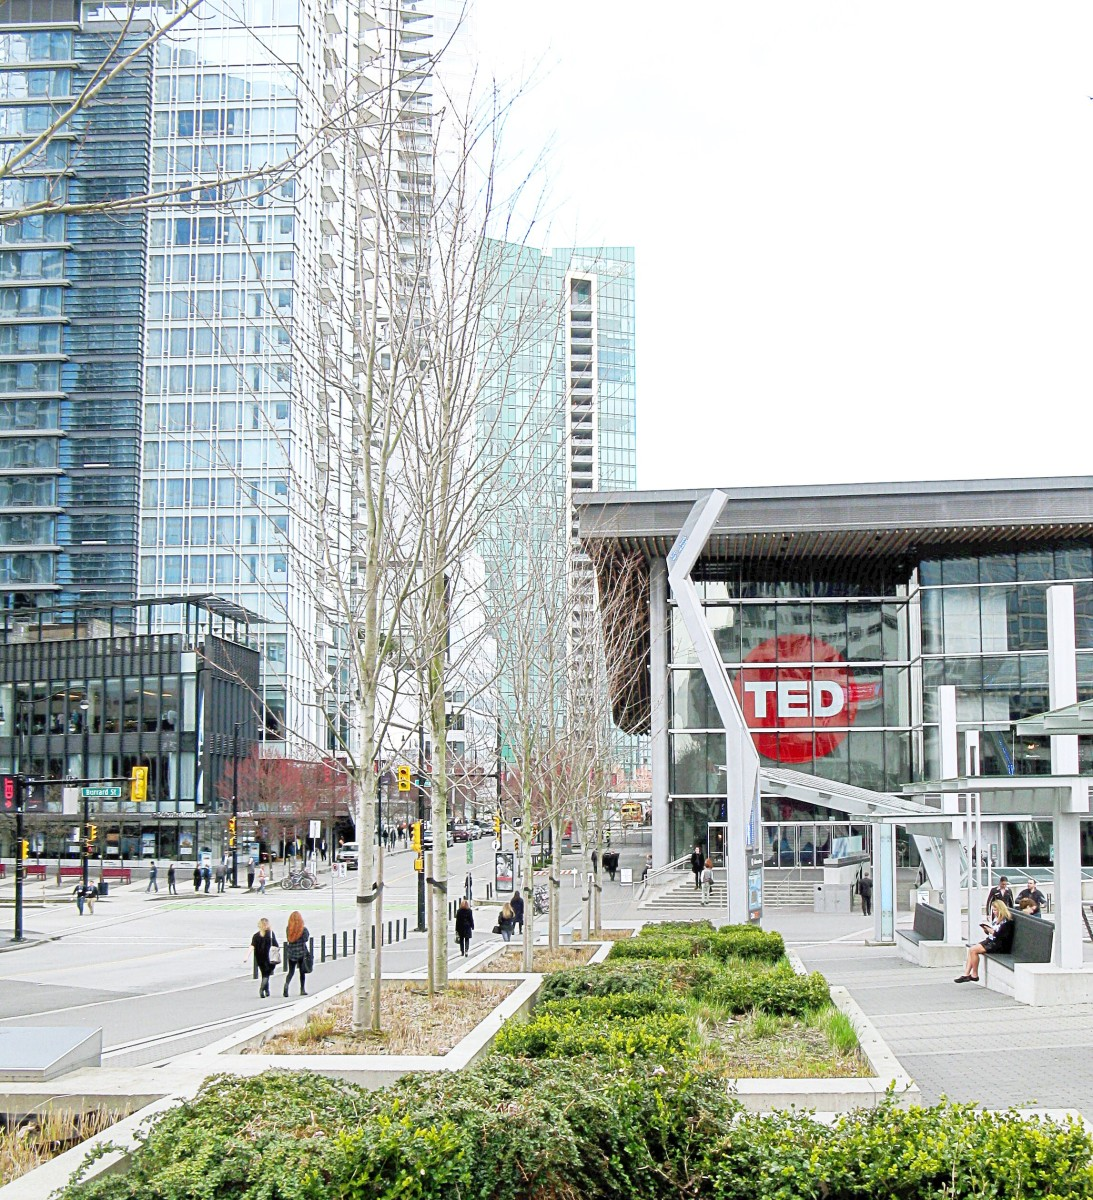 The Vancouver Convention Centre is located at Canada Place, which is located next to Burrard Inlet. The area includes other attractions, including a pier with a promenade.